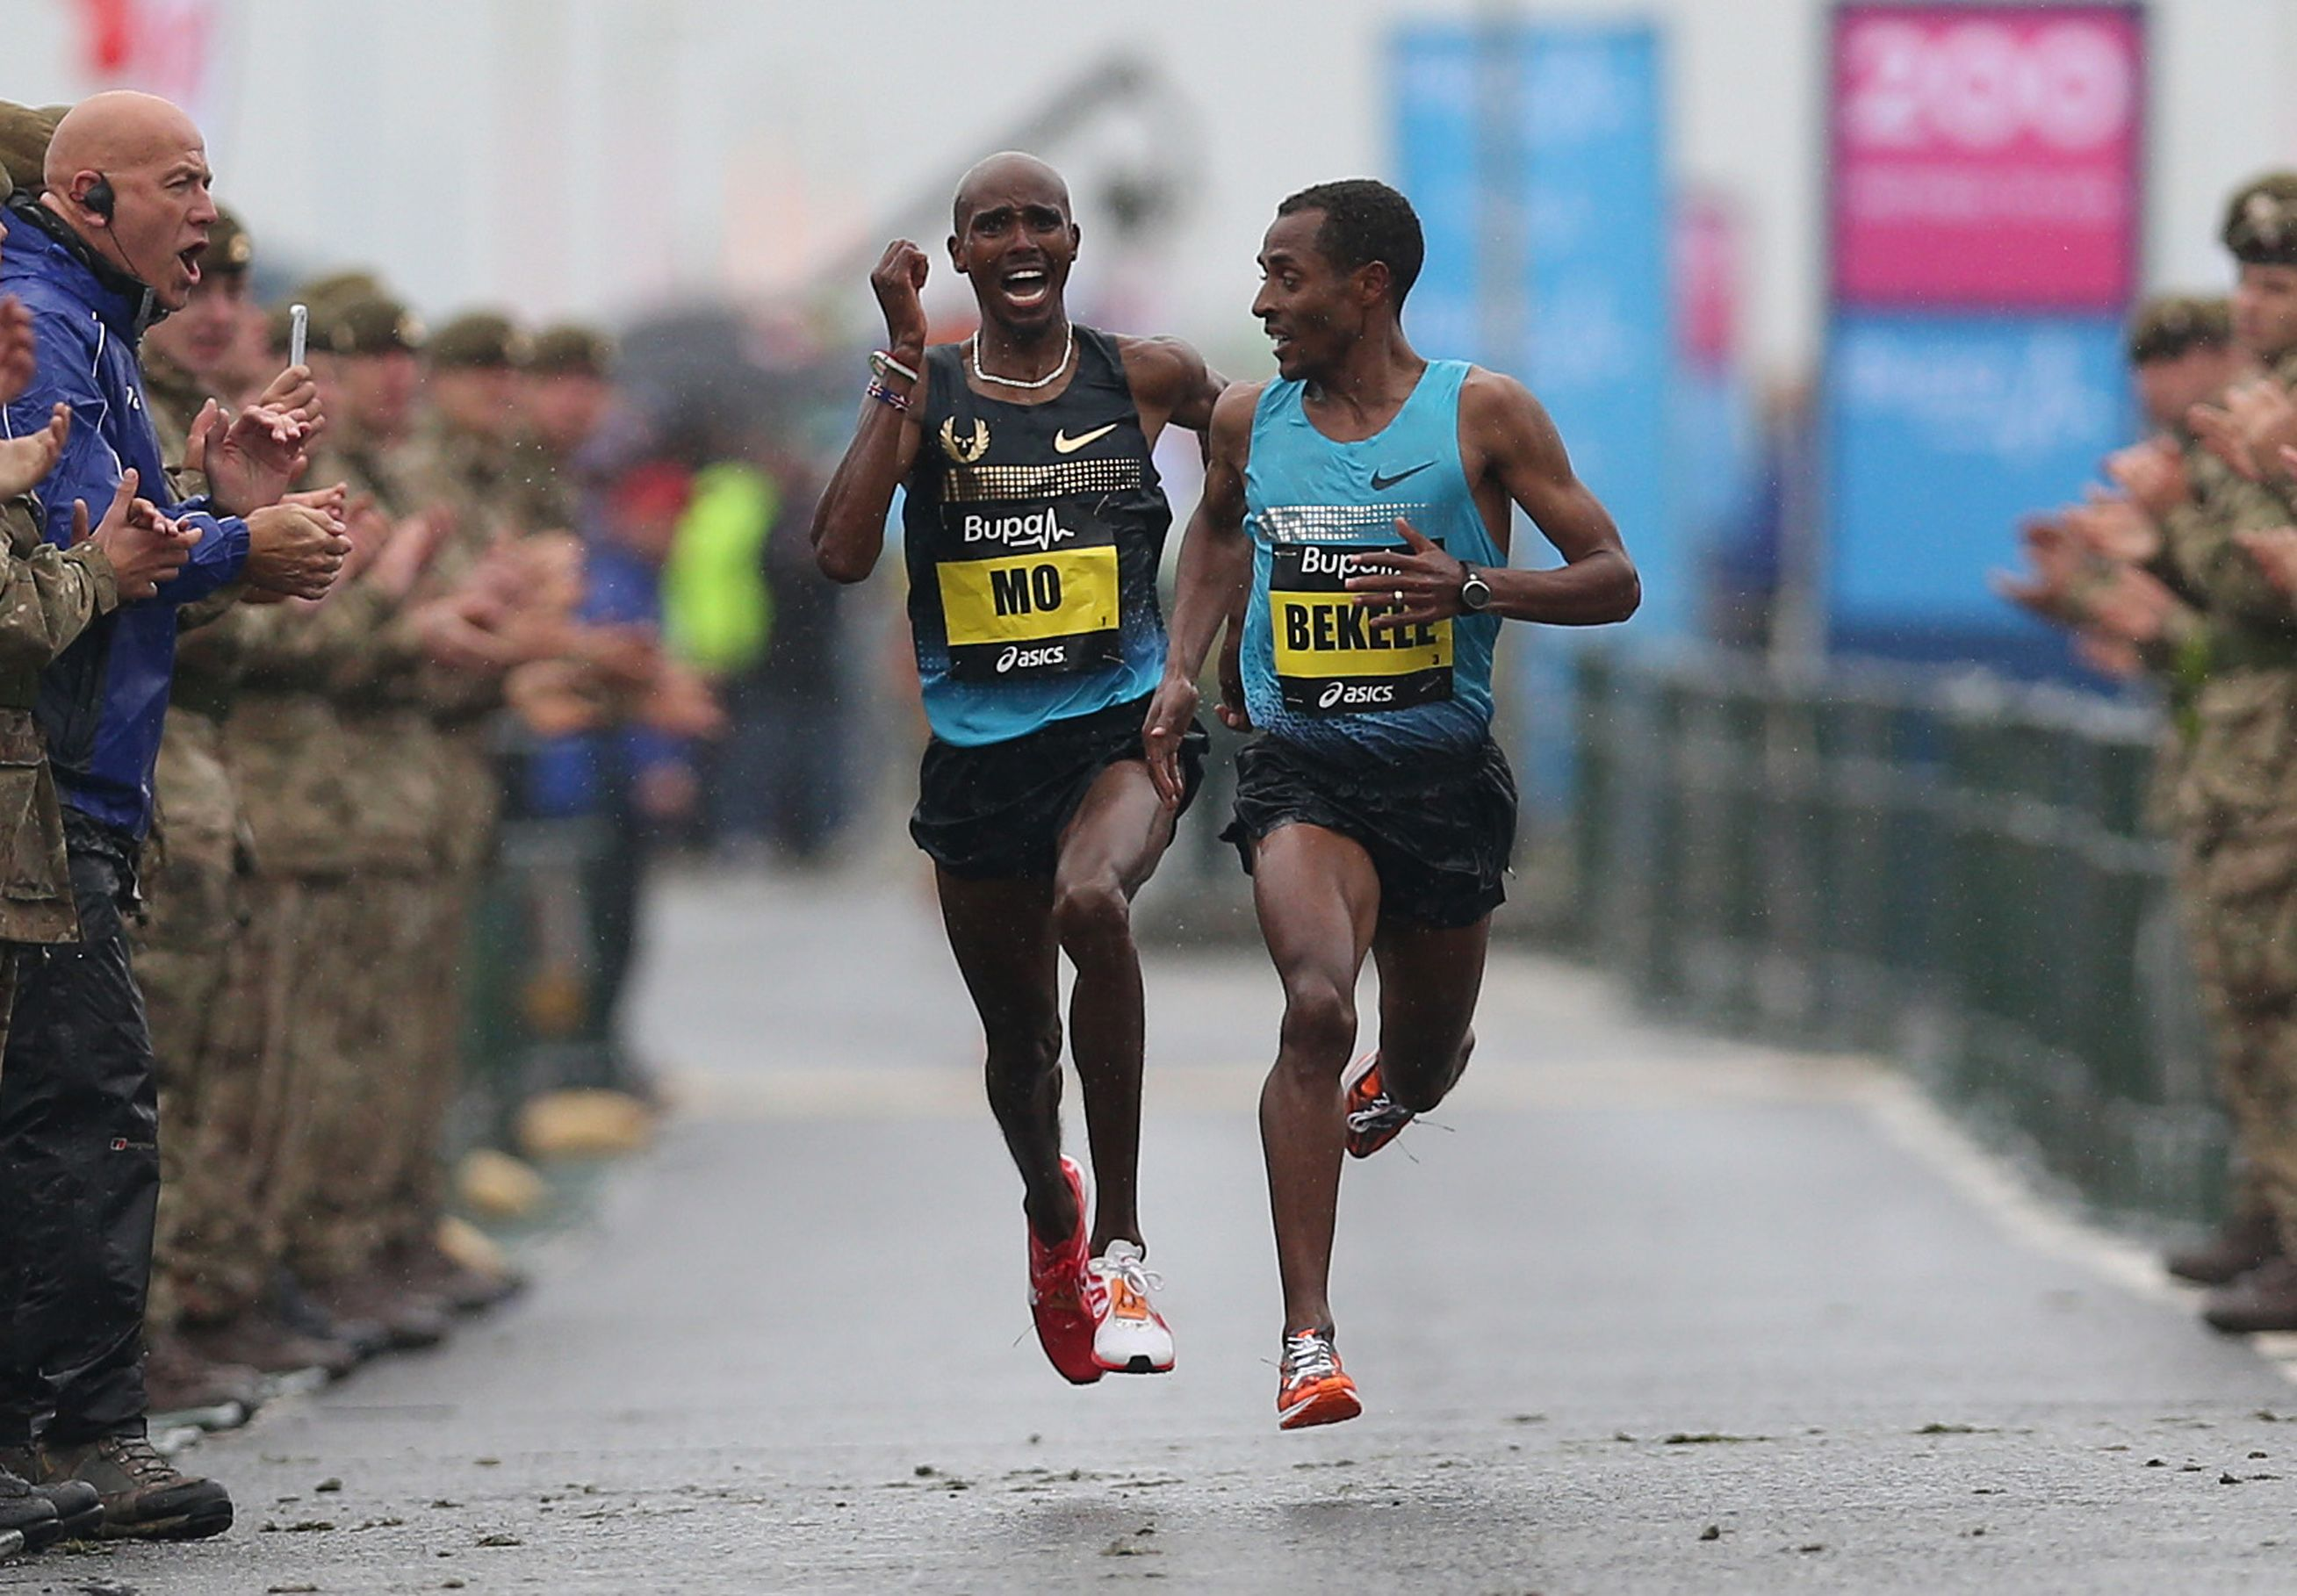 Farah to take on Bekele in the Vitality Big Half this March